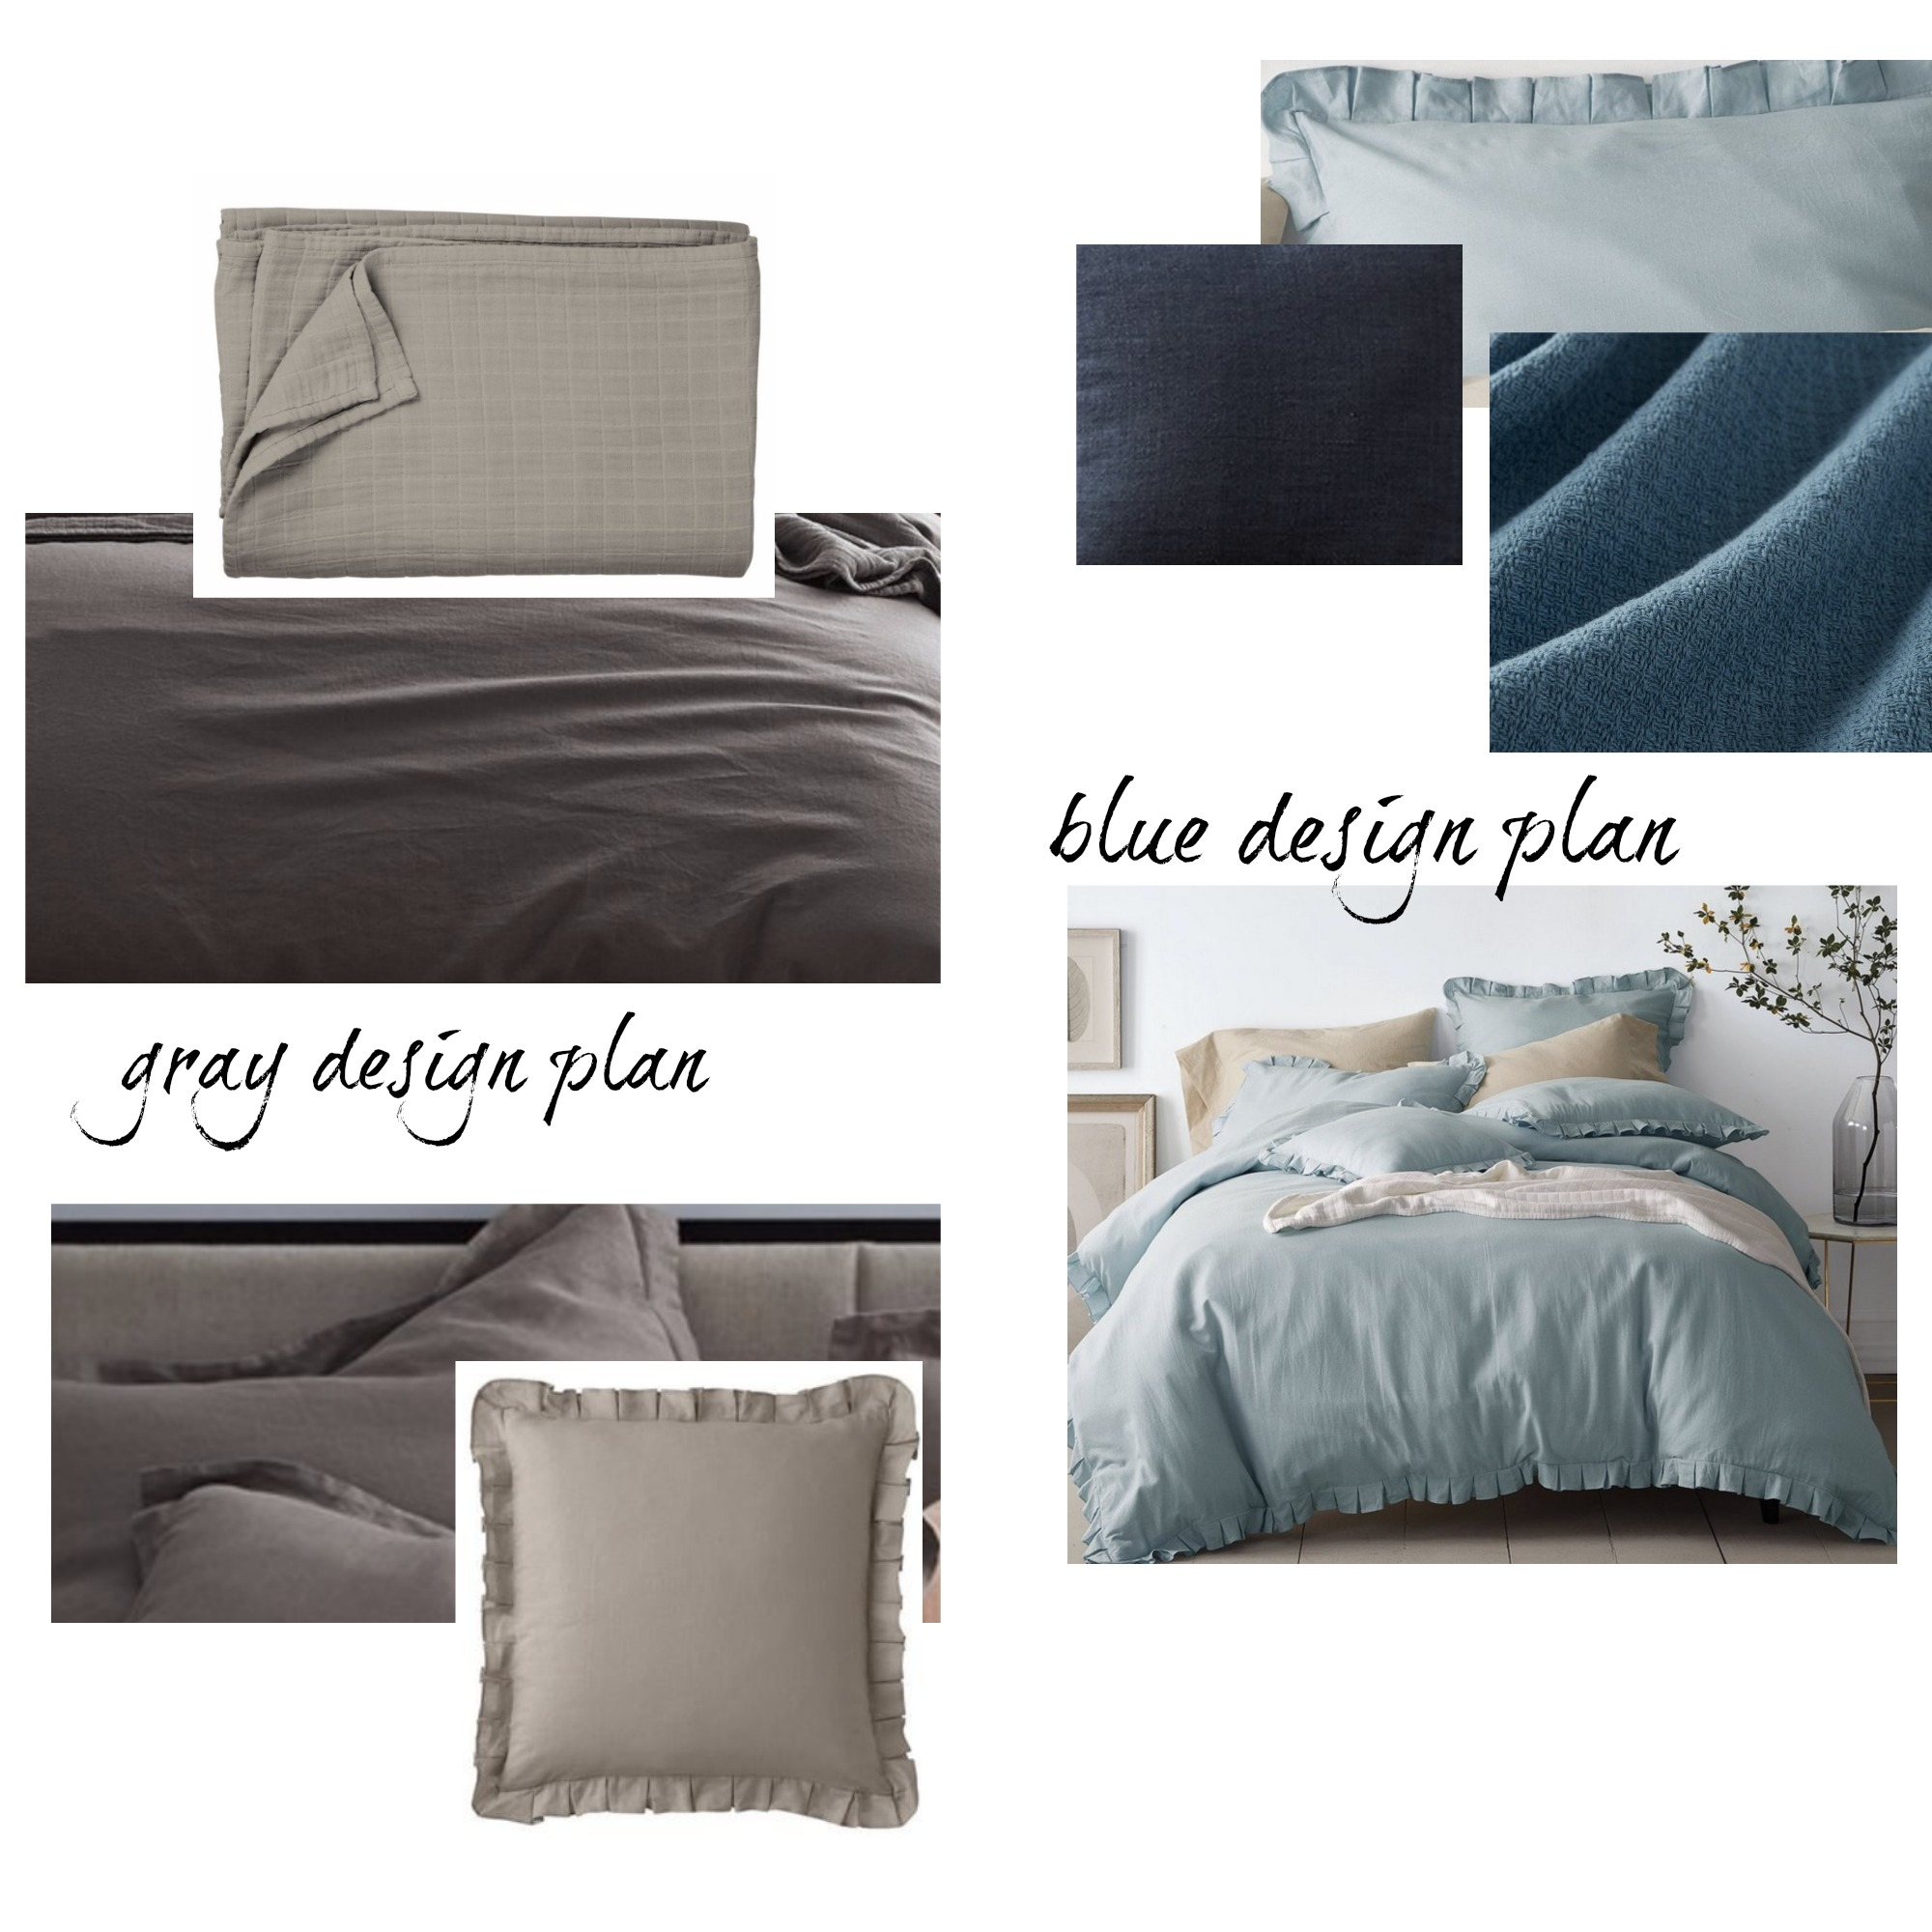 Fluffy Bedding Basics- How to Pull it all Together